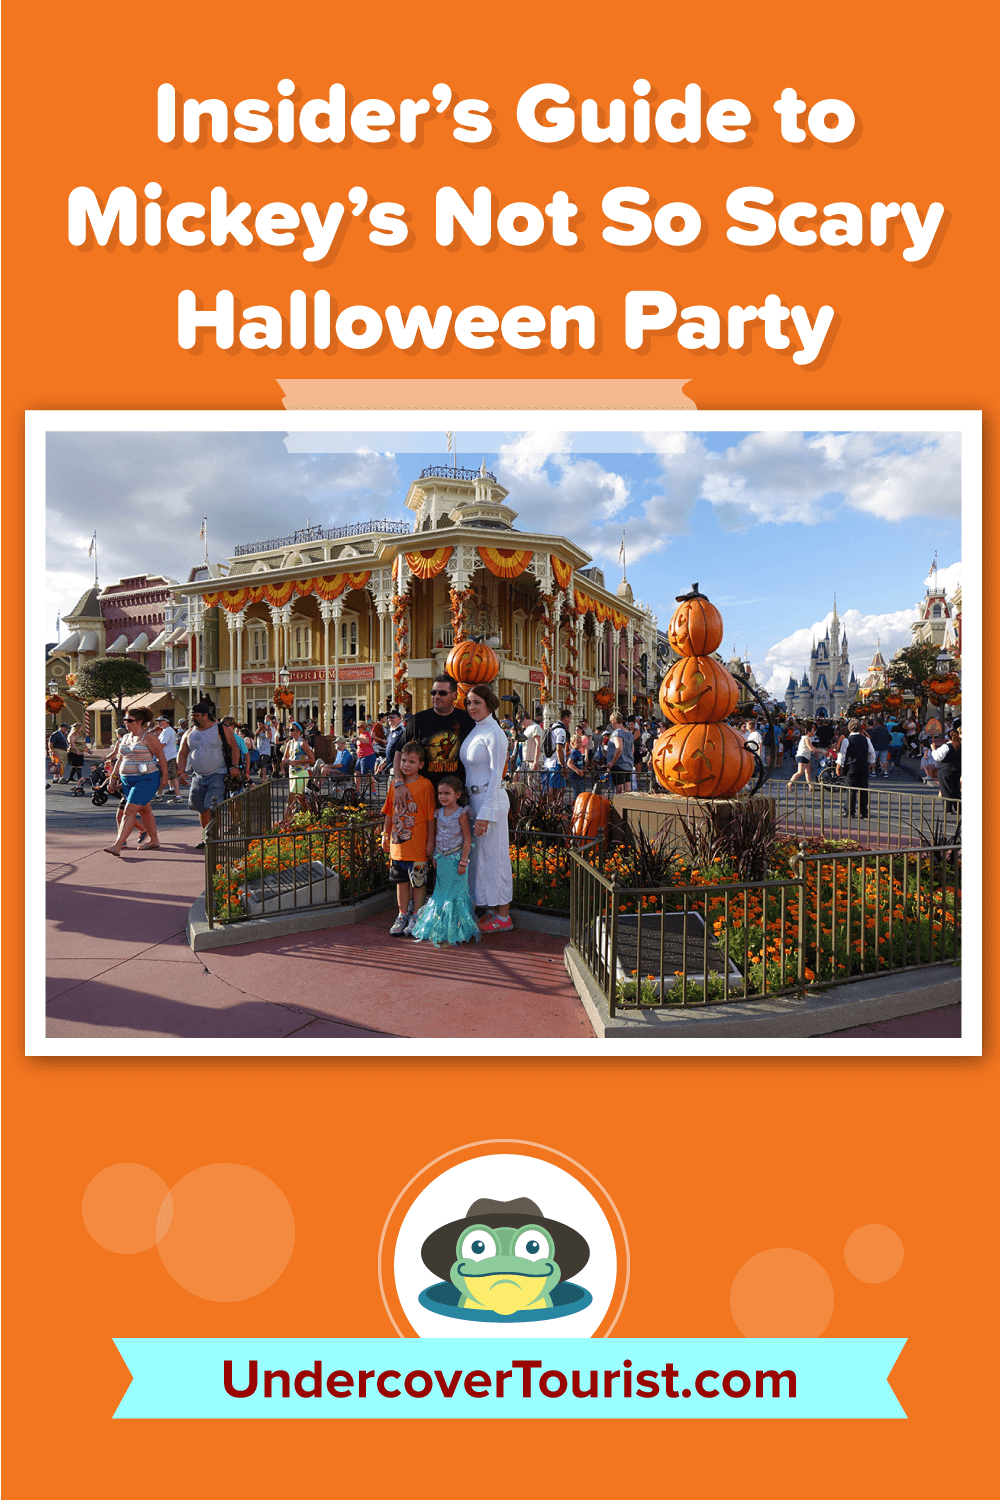 Halloween Town Movie Drawing.Guide To Mickey S Not So Scary Halloween Party 2019